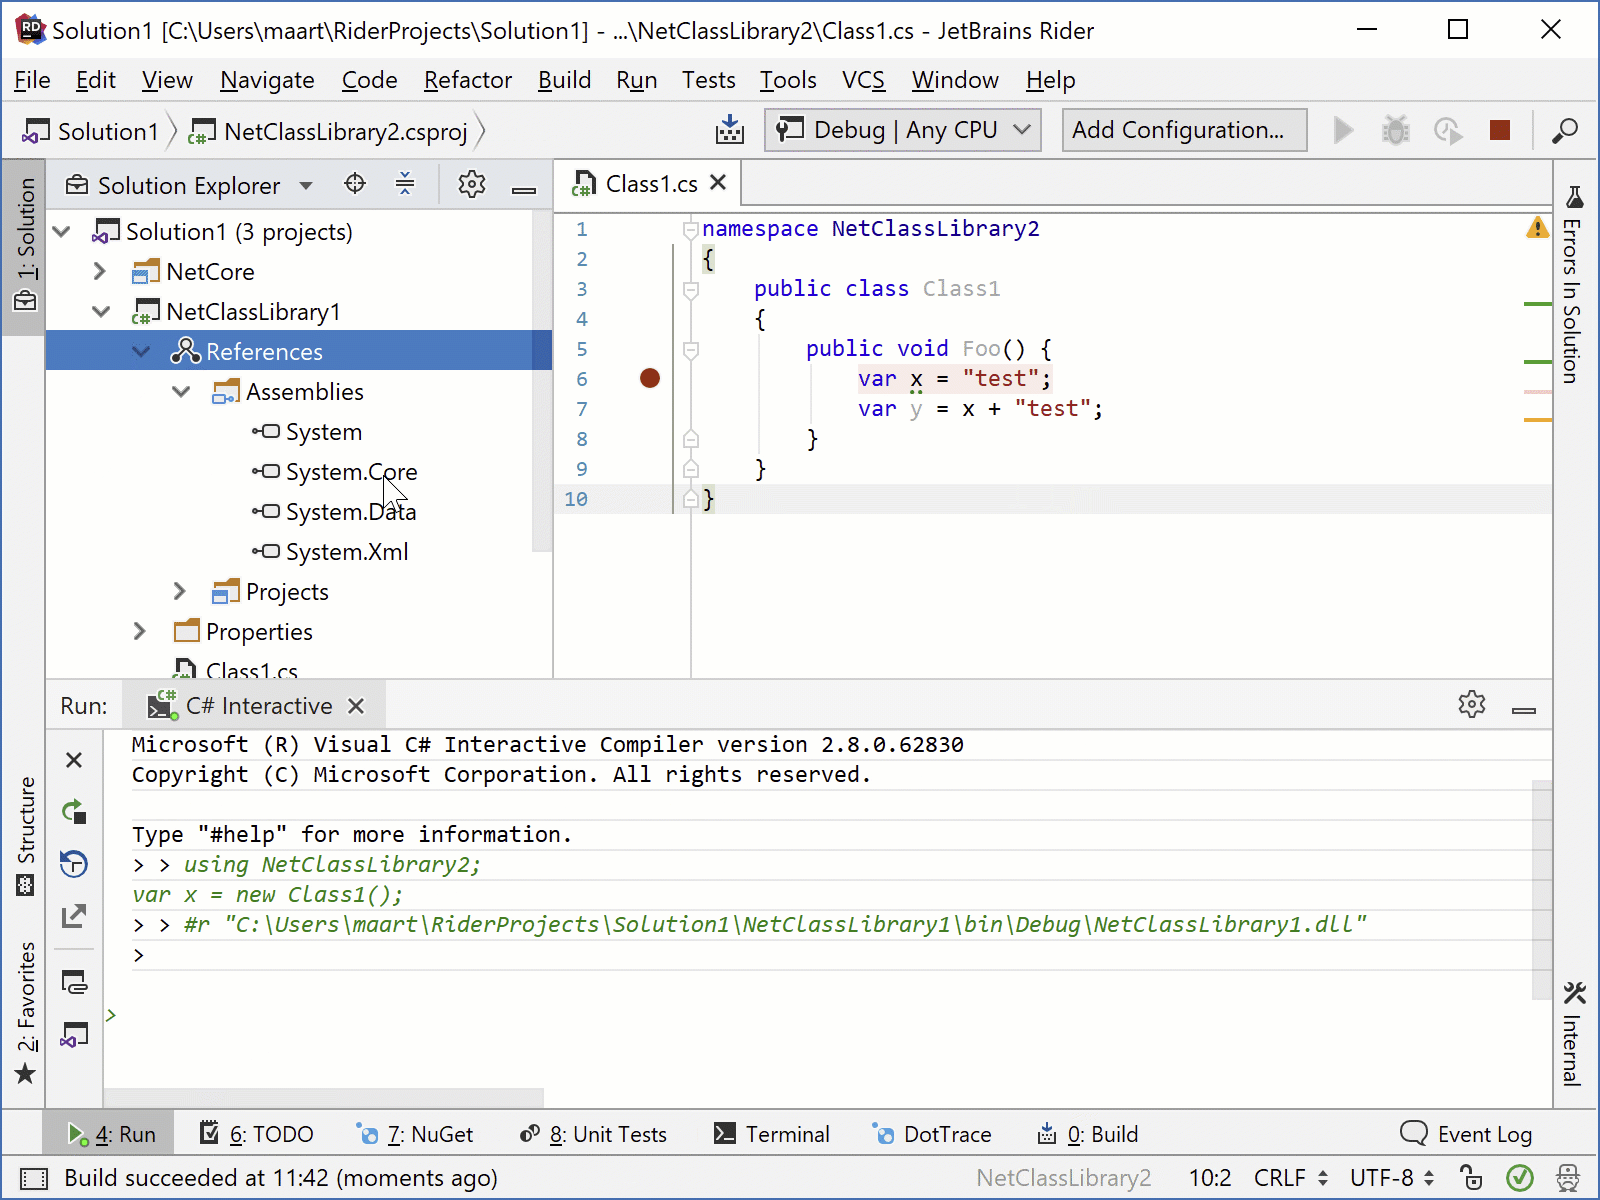 JetBrainsRider: Attaching C# Interactive to the debugger